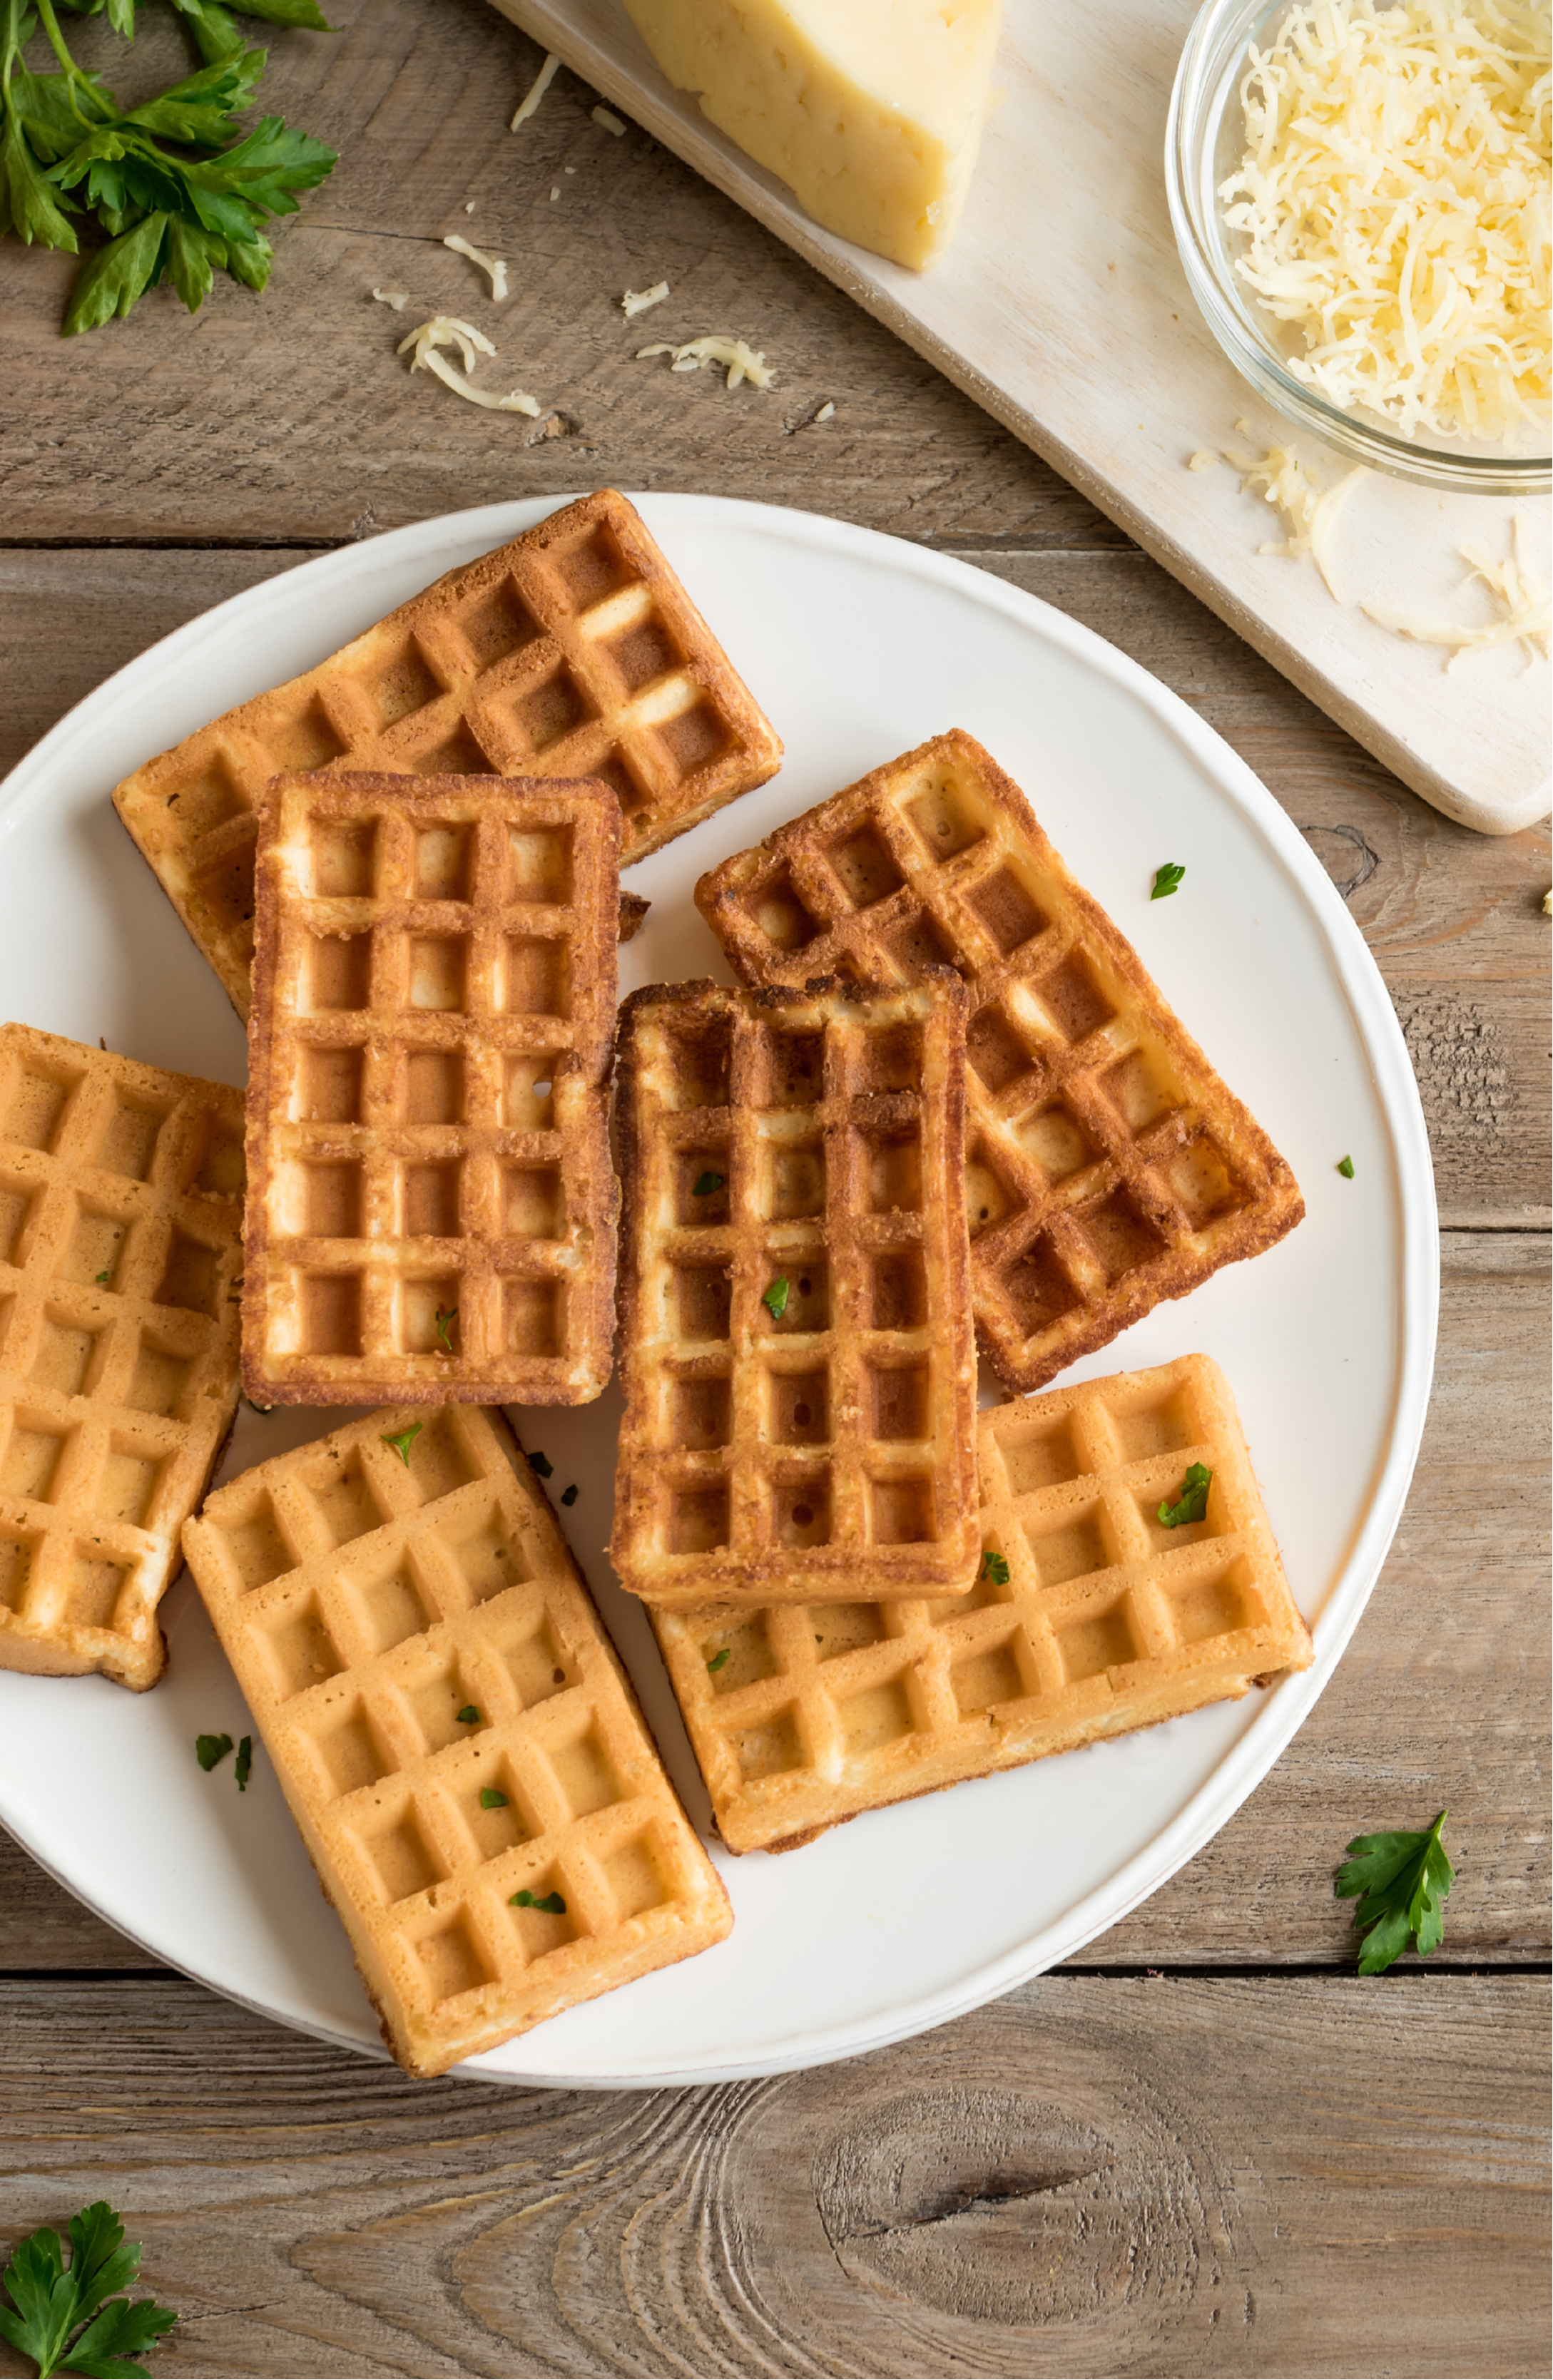 If you're doing Keto then you will want to know these chaffle recipes.